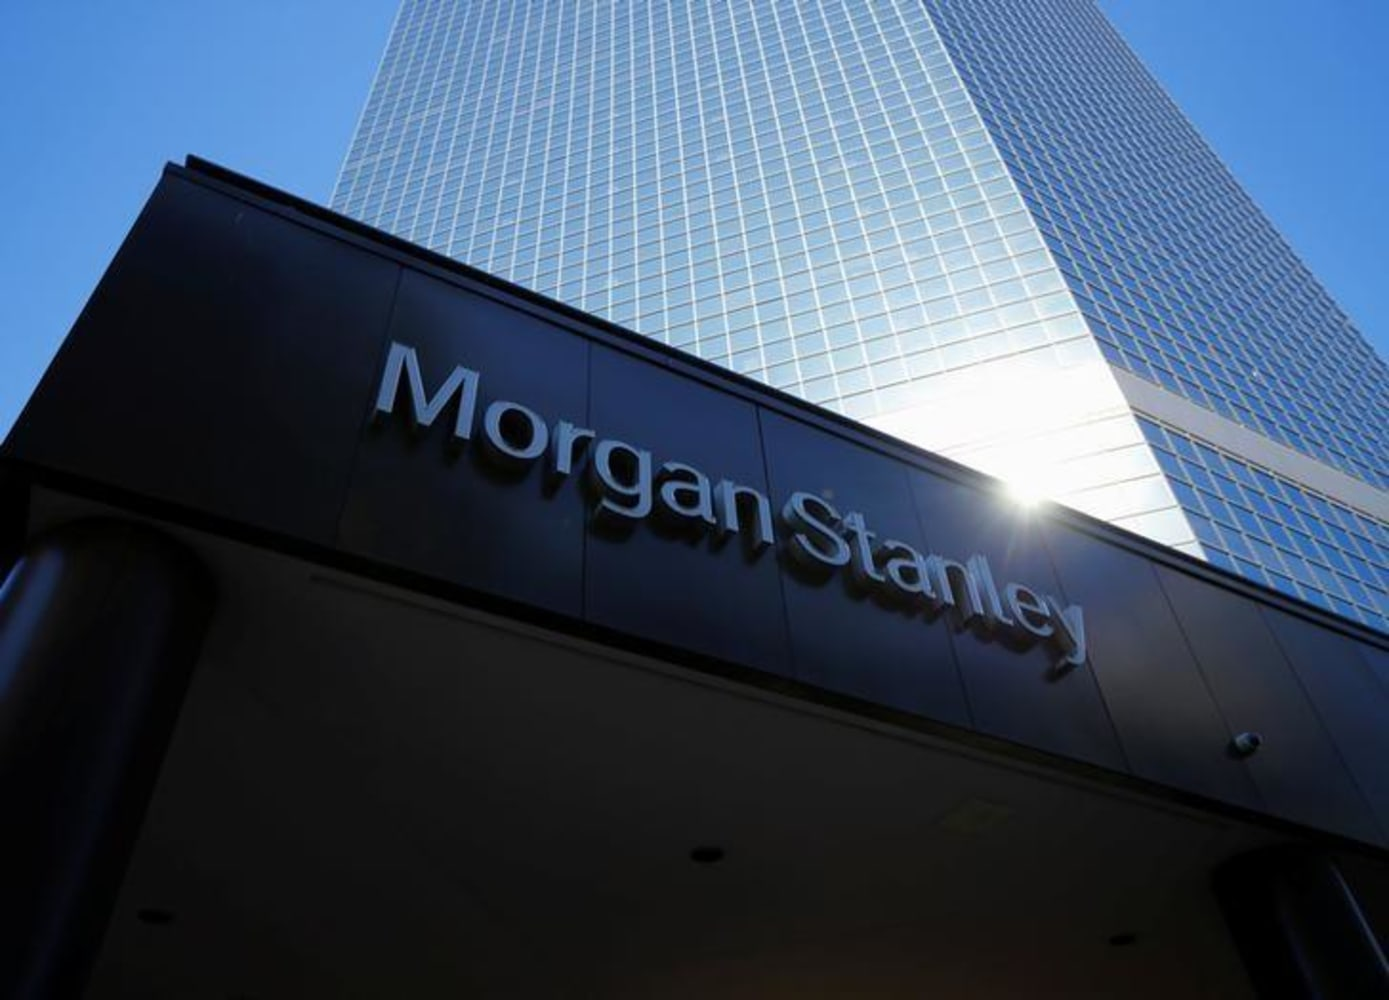 Massachusetts, Rhode Island officials: Morgan Stanley ran unethical sales contests